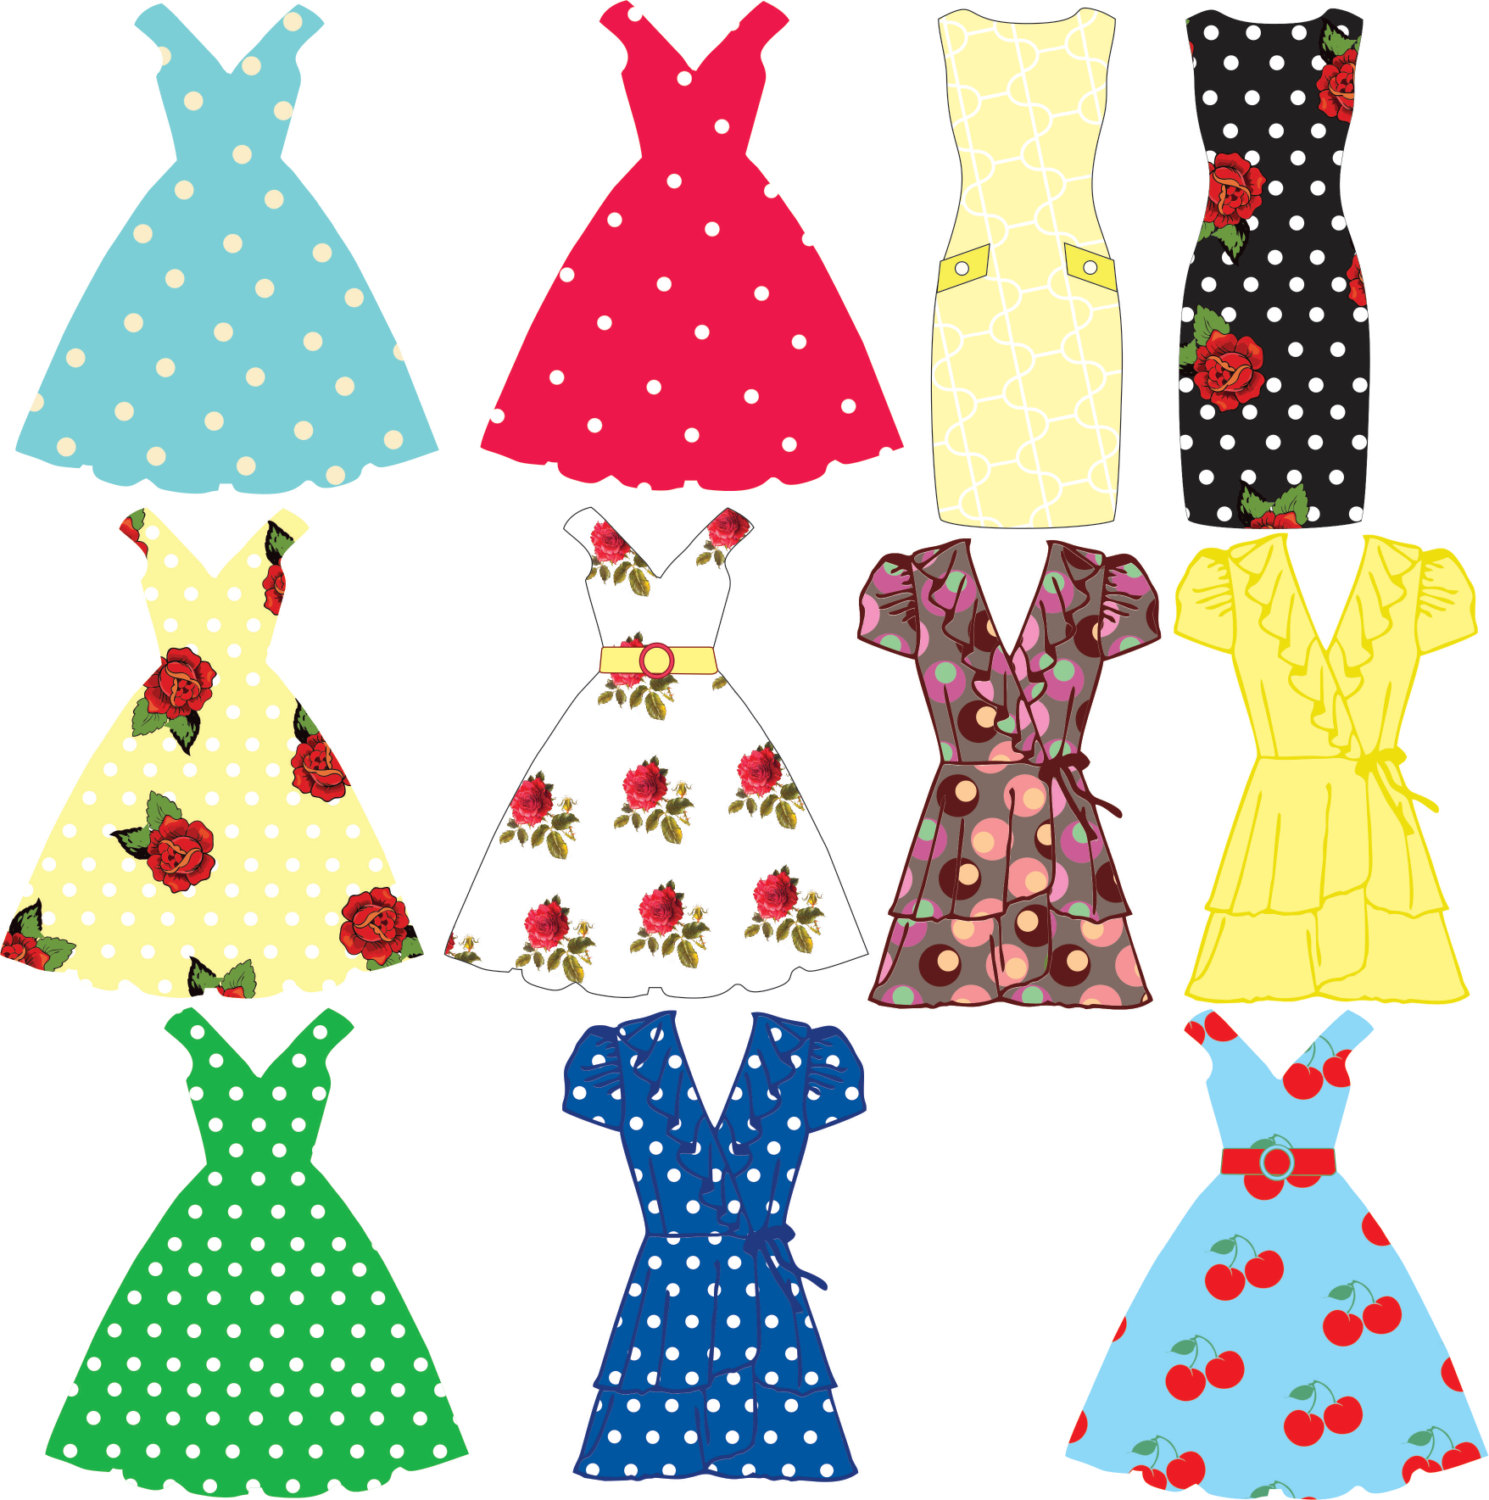 Clothing clipart women's clothing. Free dress cliparts download